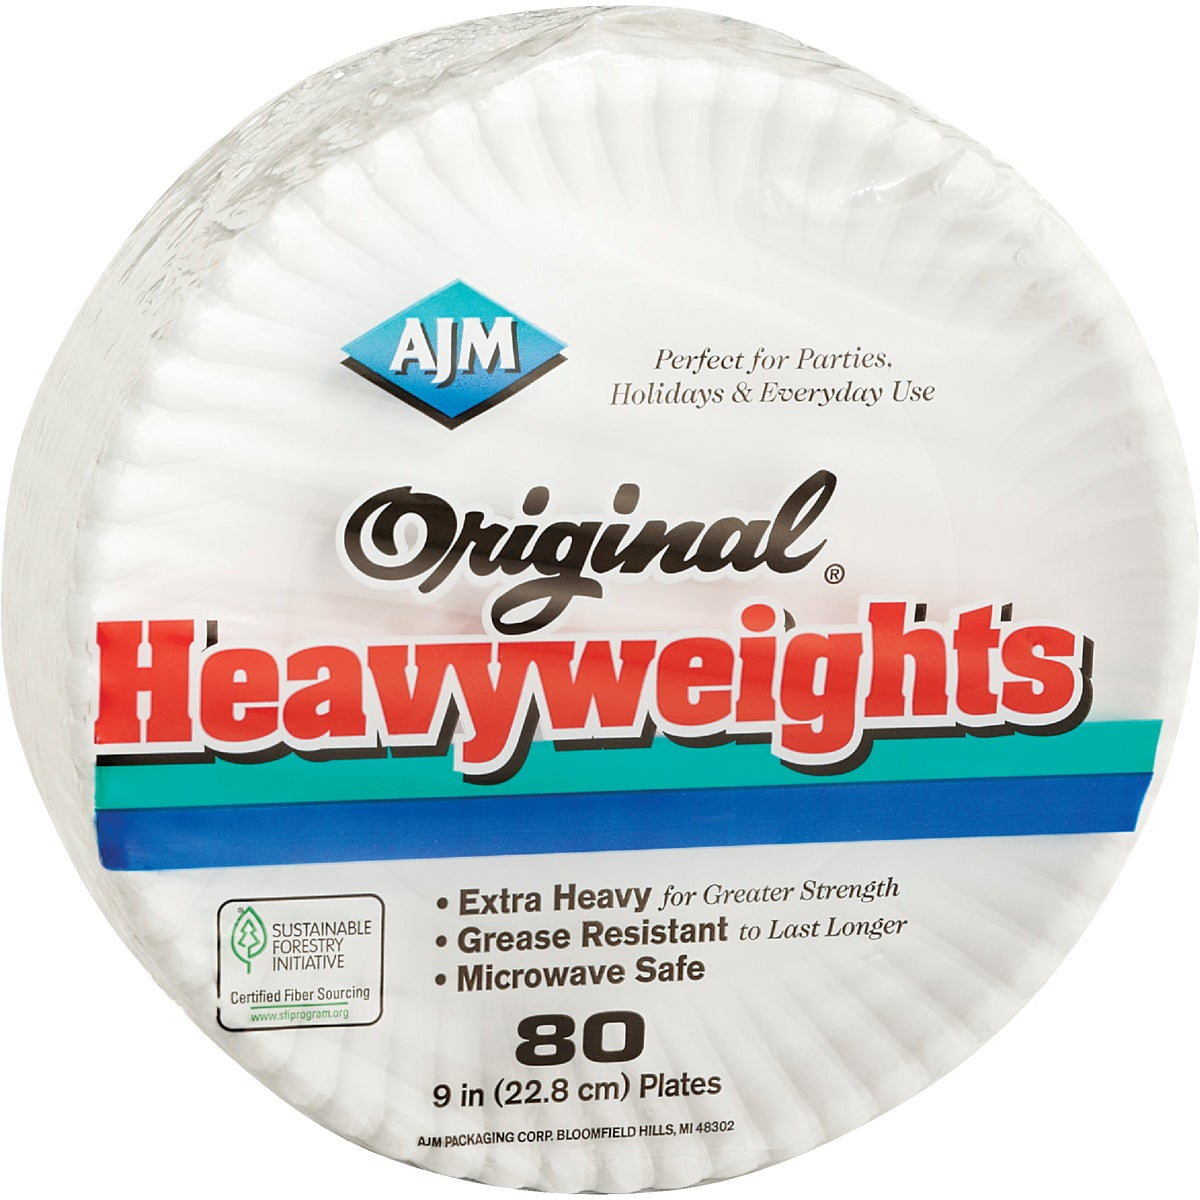 "80 COUNT 9"" PAPER PLATE - OH9AJFWH by A J M Packaging Corp"